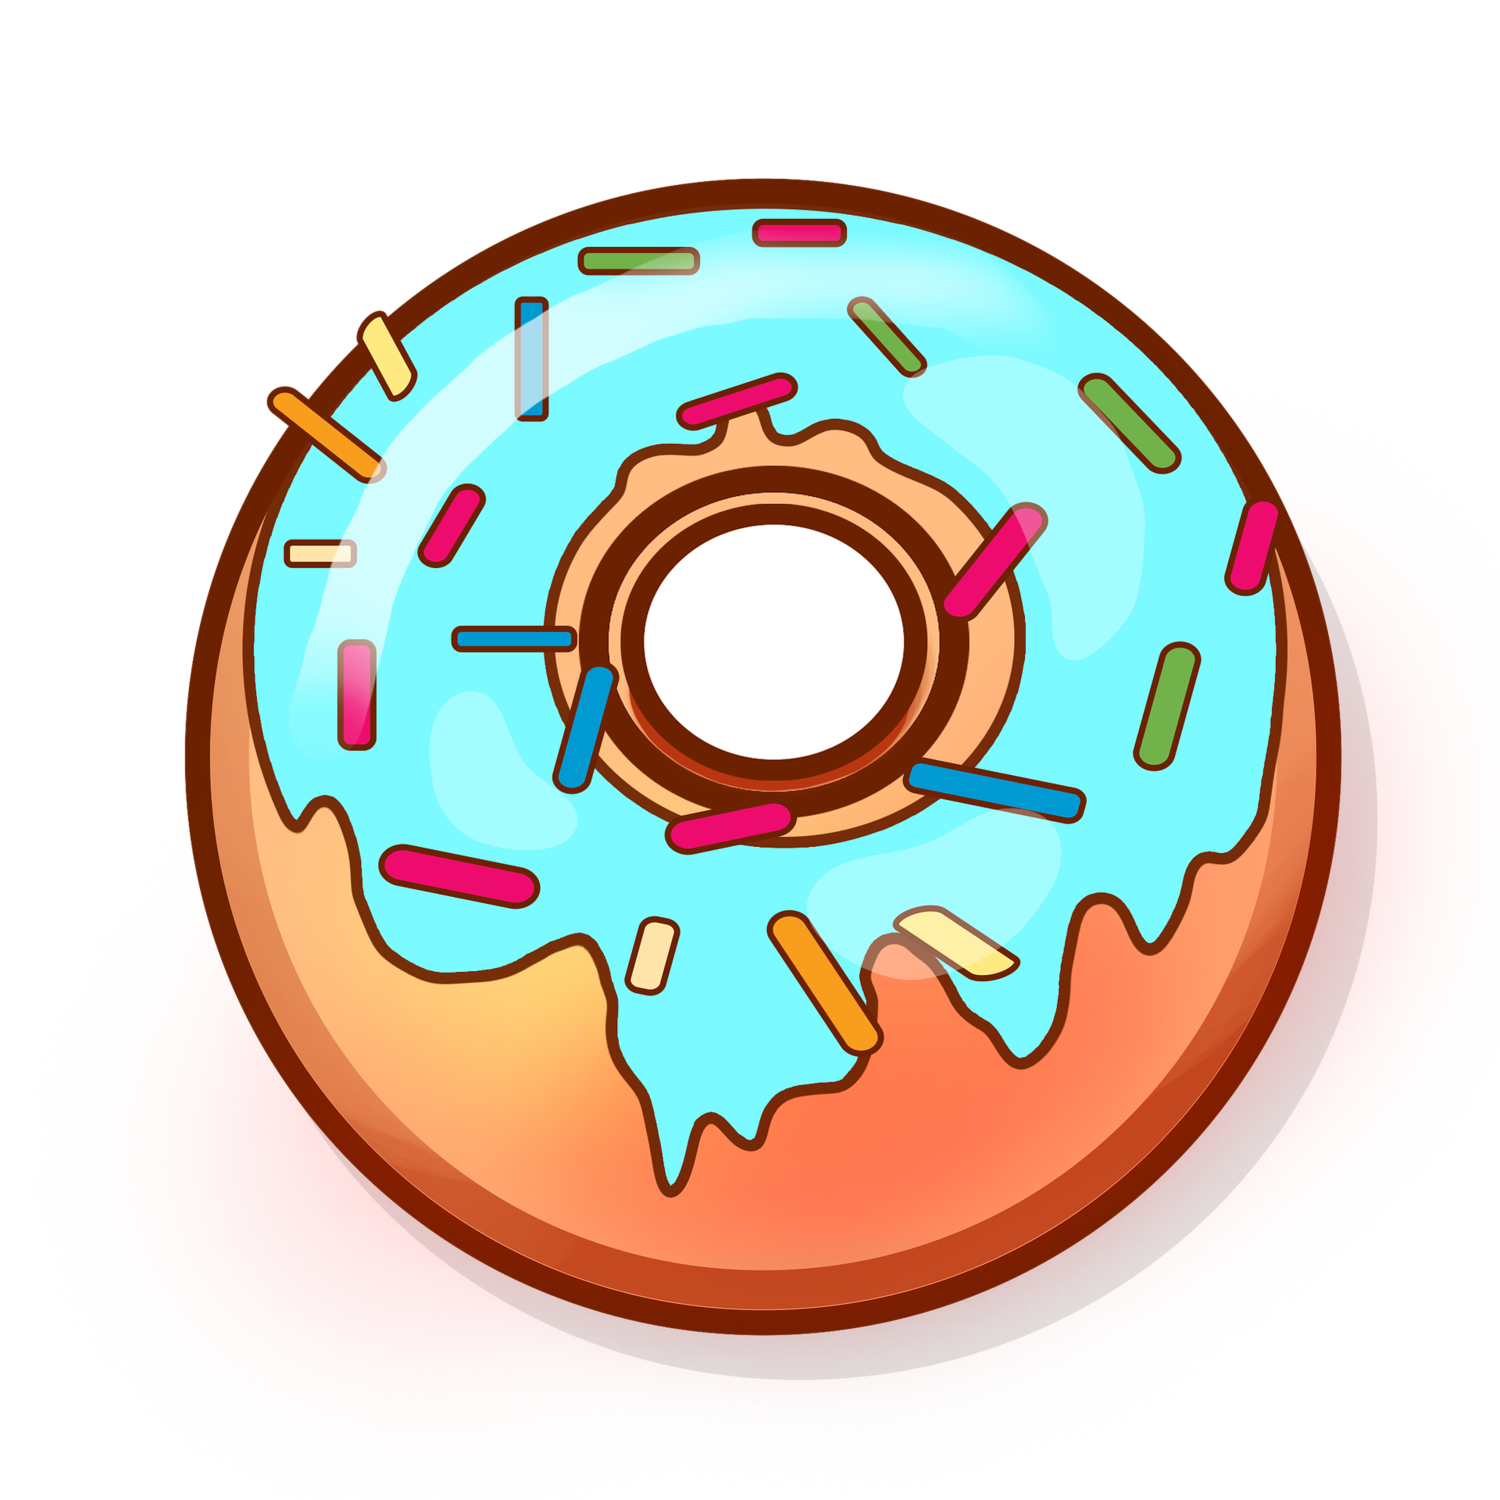 Doughnut clipart blue. Sugarboy donuts donutpng